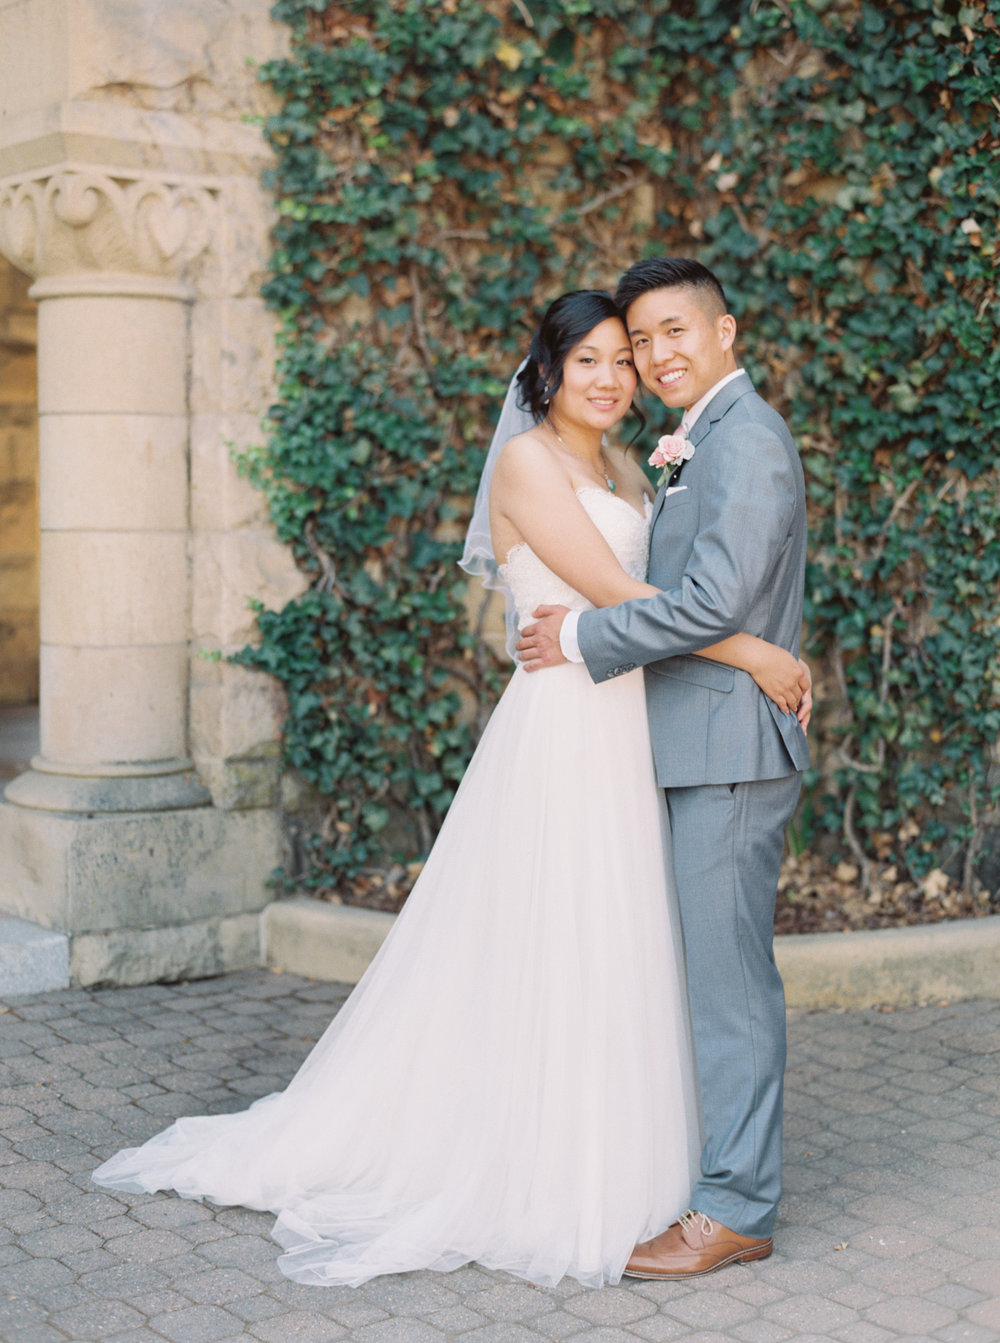 trynhphoto_wedding_photography_Standford_PaloAlto_SF_BayArea_Destination_OC_HA-51.jpg